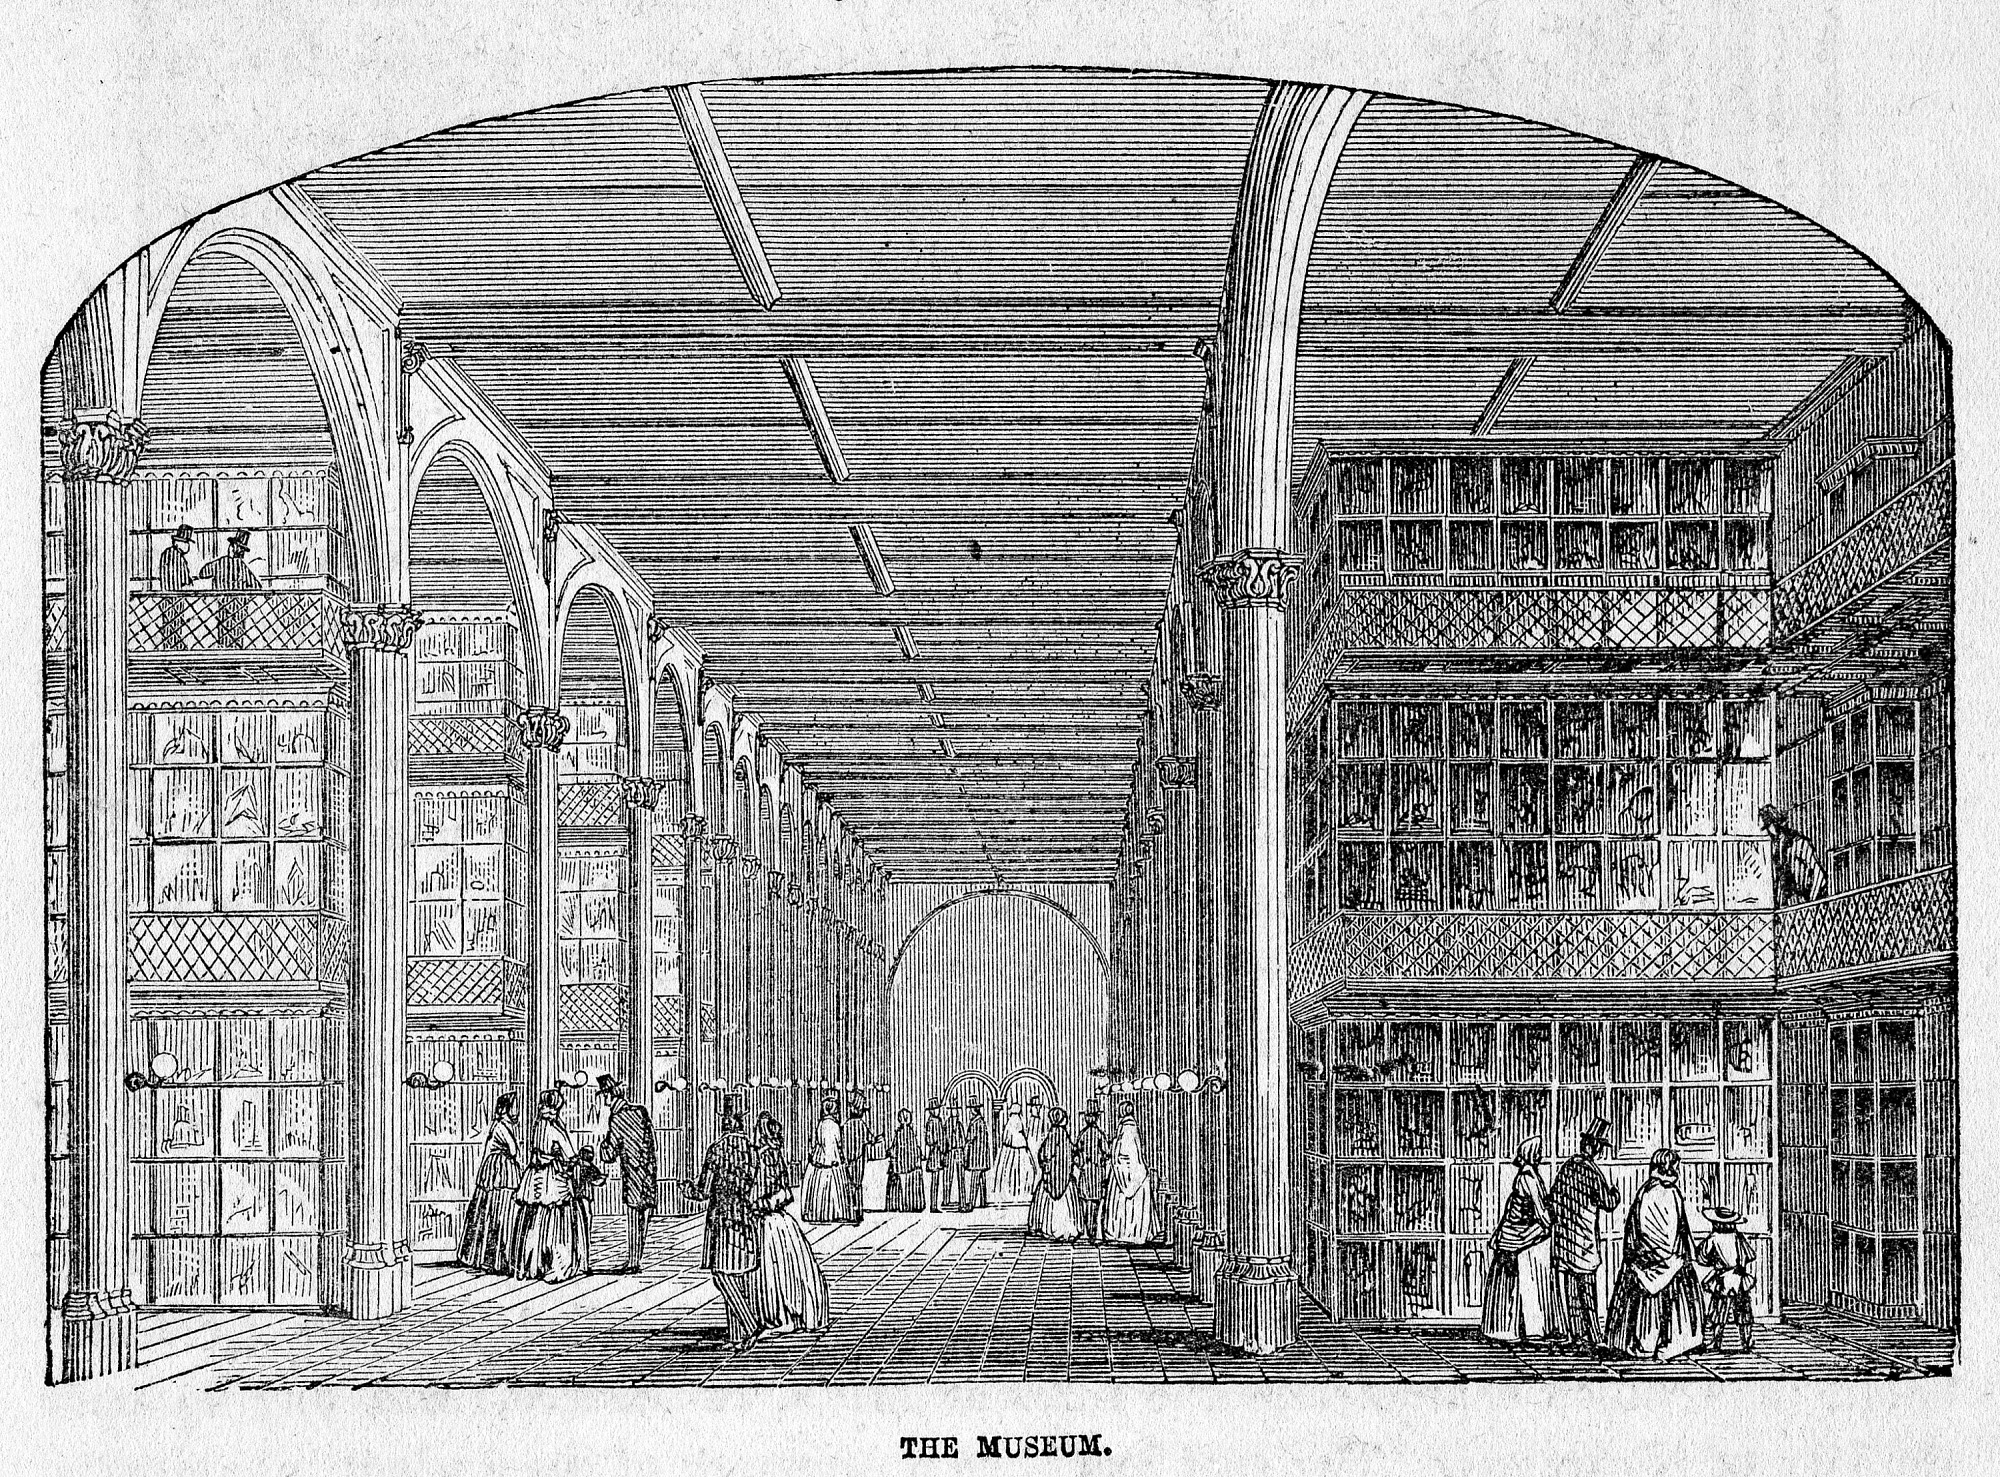 """Woodcut engraving of the Museum in the Great Hall of the Smithsonian Castle was first printed in the 1857 guidebook by William J. Rhees, """"An Account of the Smithsonian Institution."""" Smithsonian Institution Archives, negative number 75-12247."""